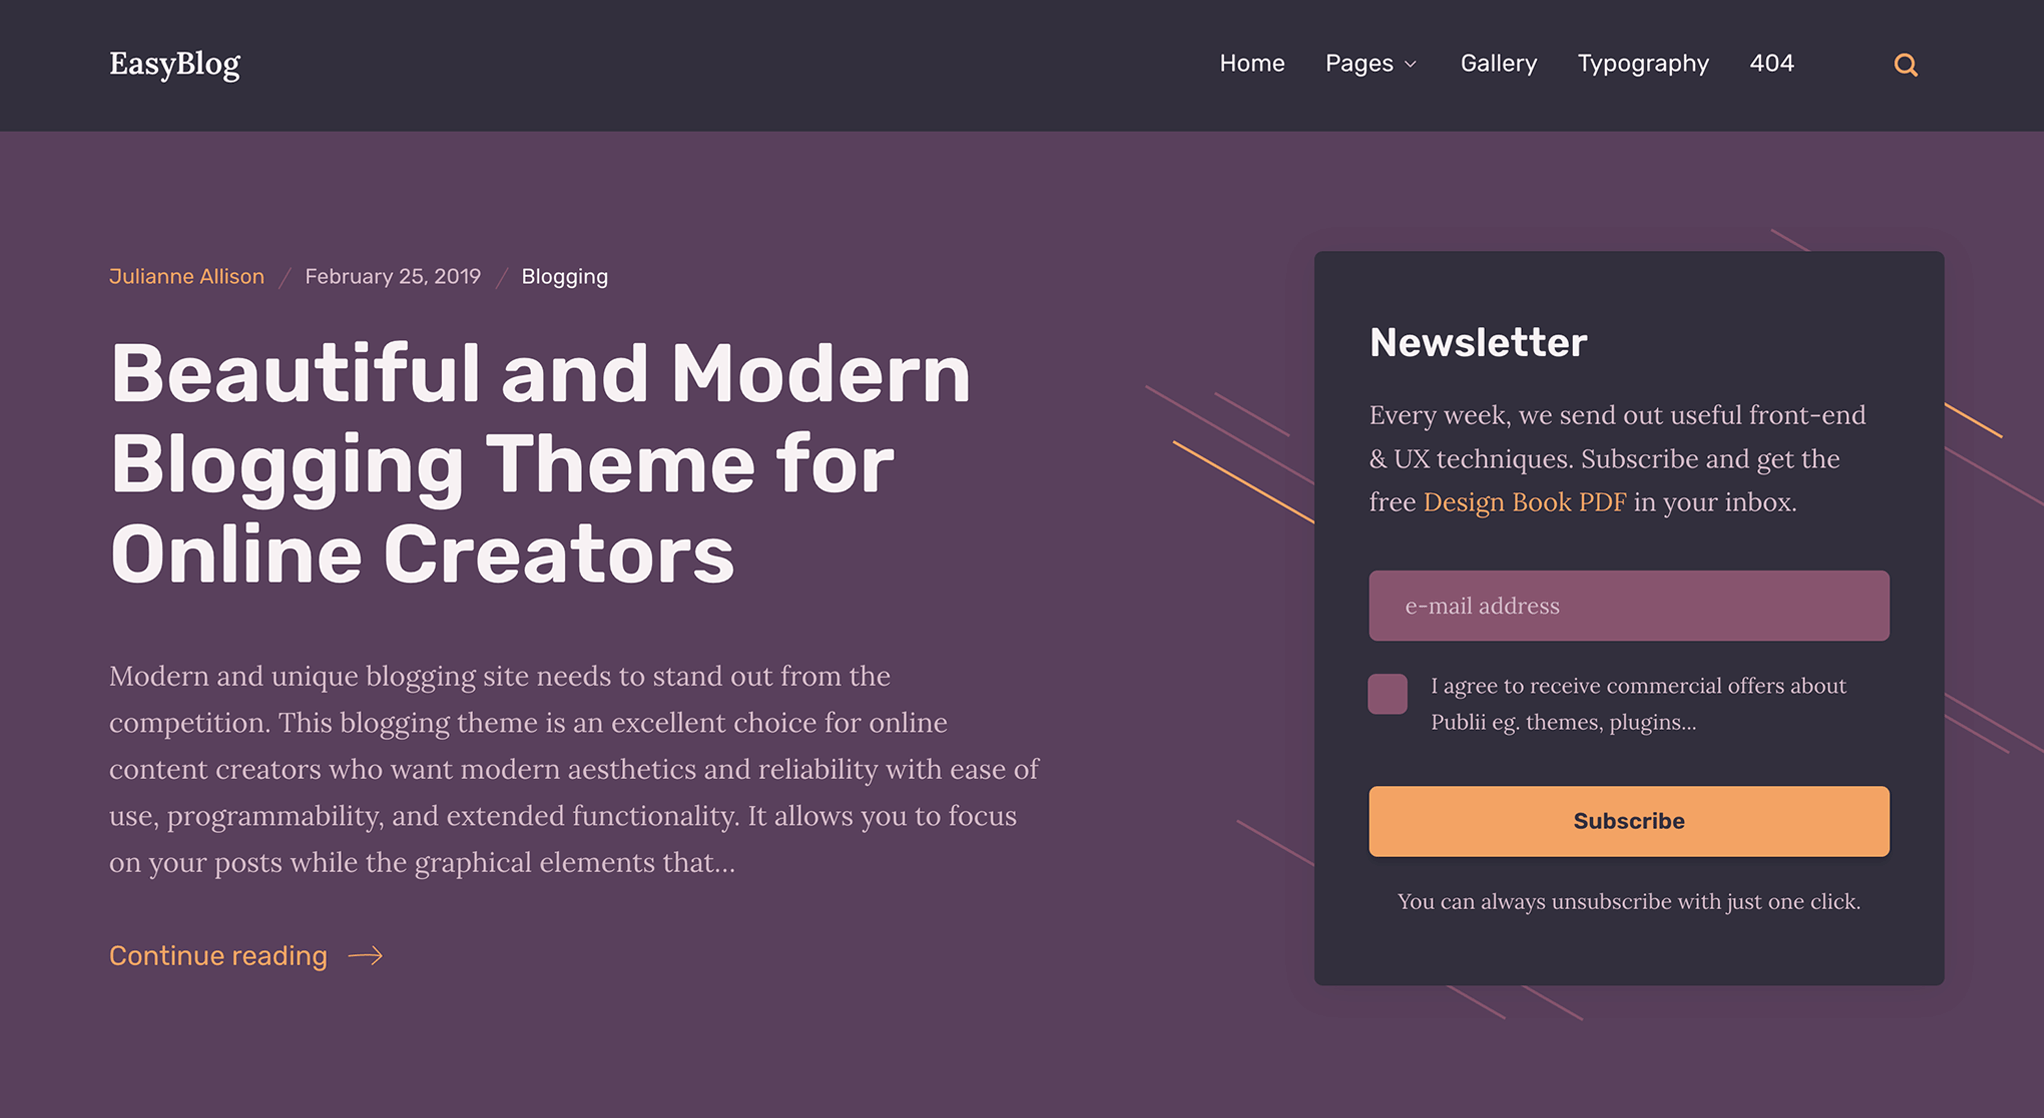 EasyBlog theme with newsletter sign up form